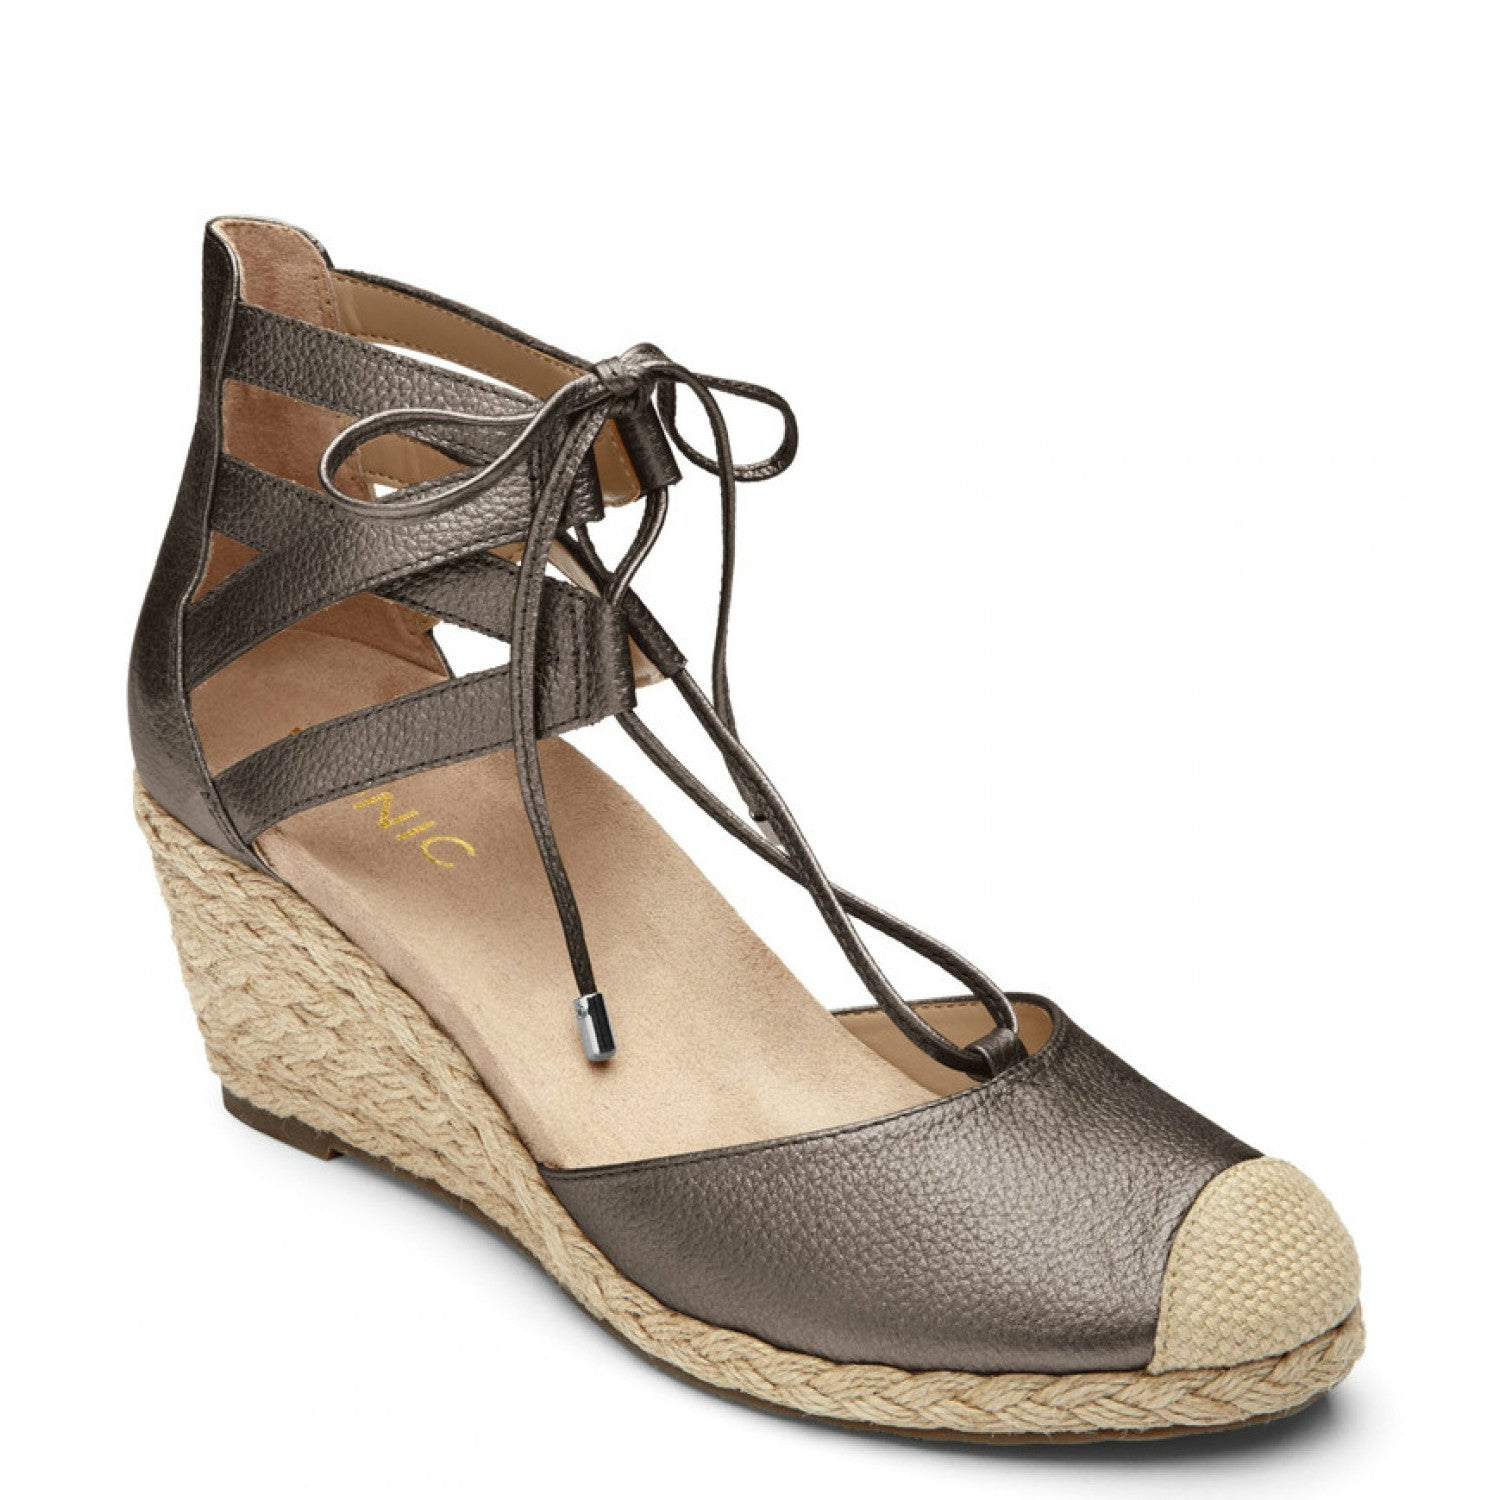 e4a222444215 Vionic Women's Calypso Espadrille Wedge - Pewter - ShoeShackOnline